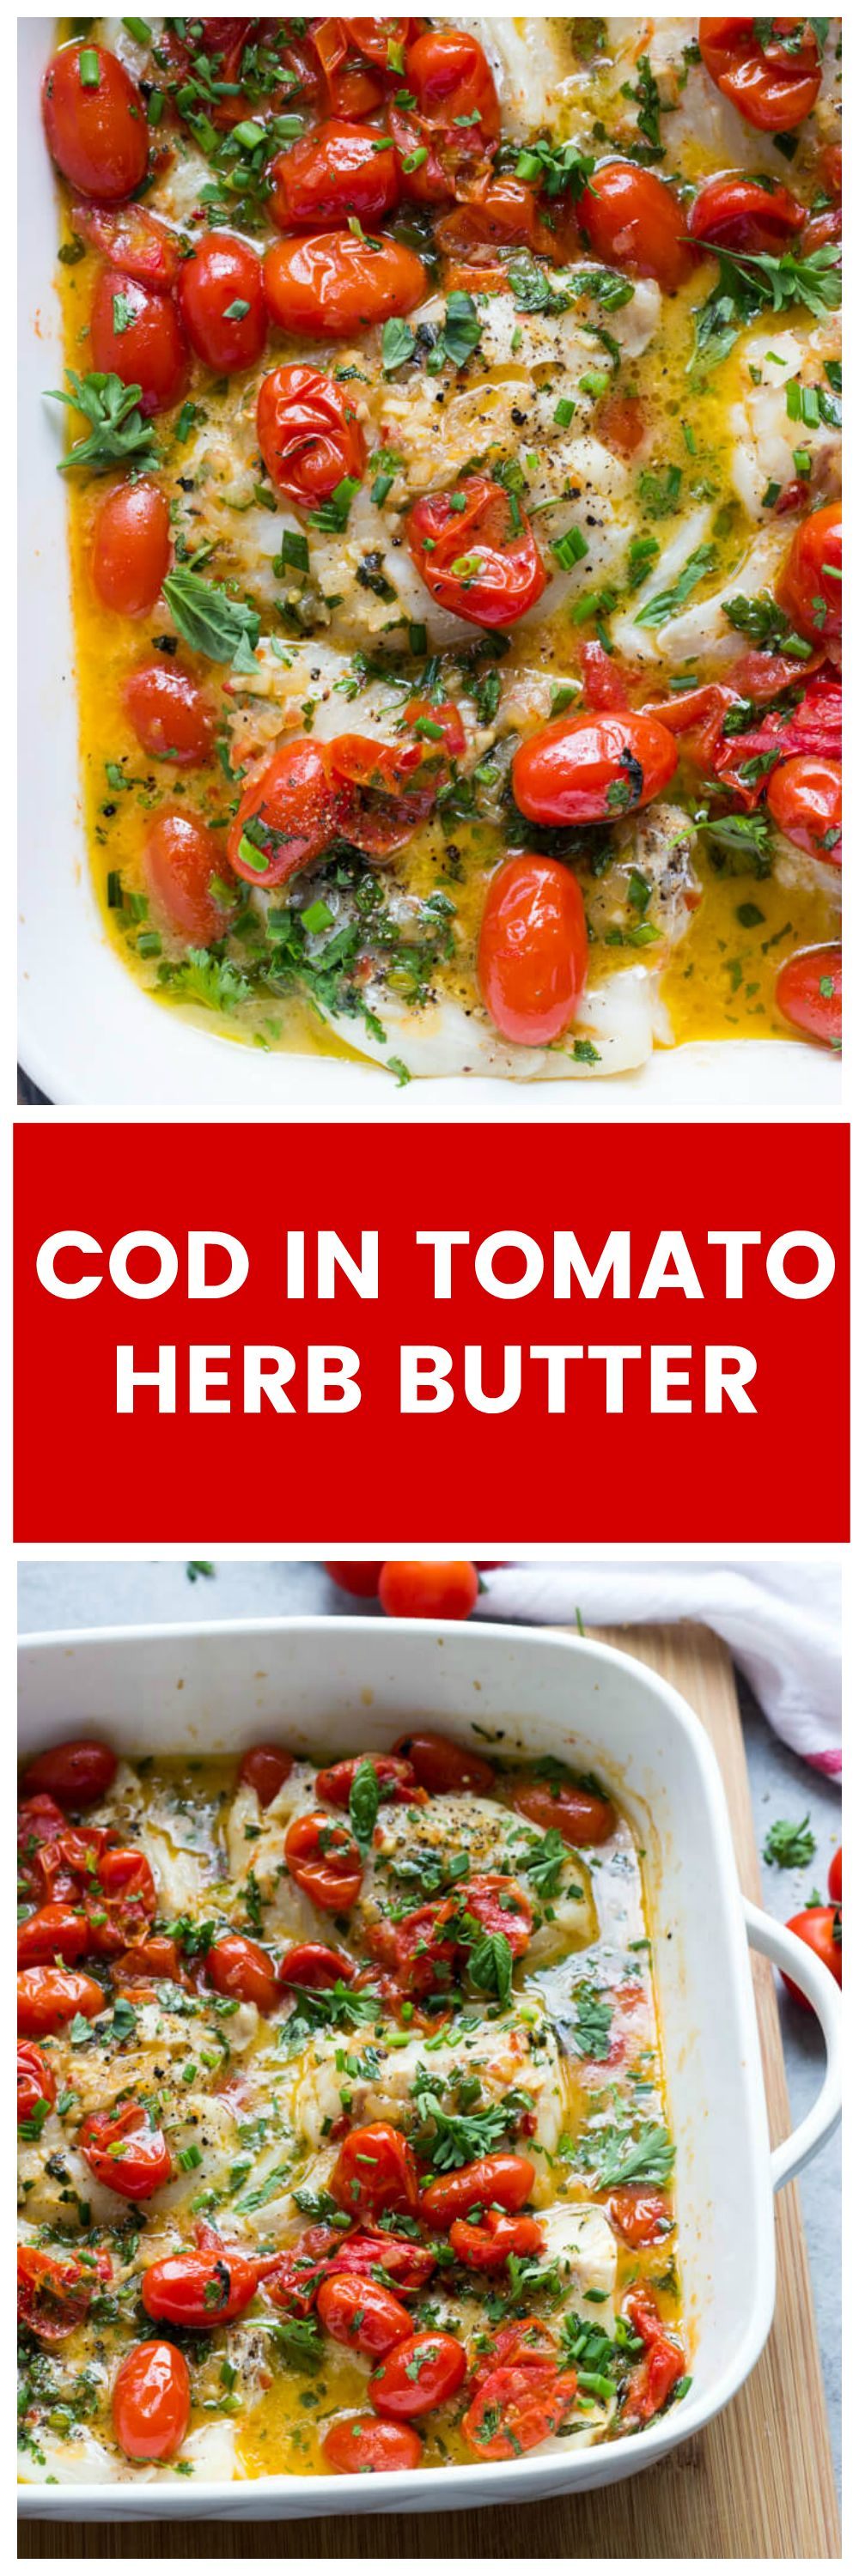 Cod With Tomato And Herb Butter 5 Star Recipe Little Broken Recipe Cod Recipes Fish Recipes Herb Butter